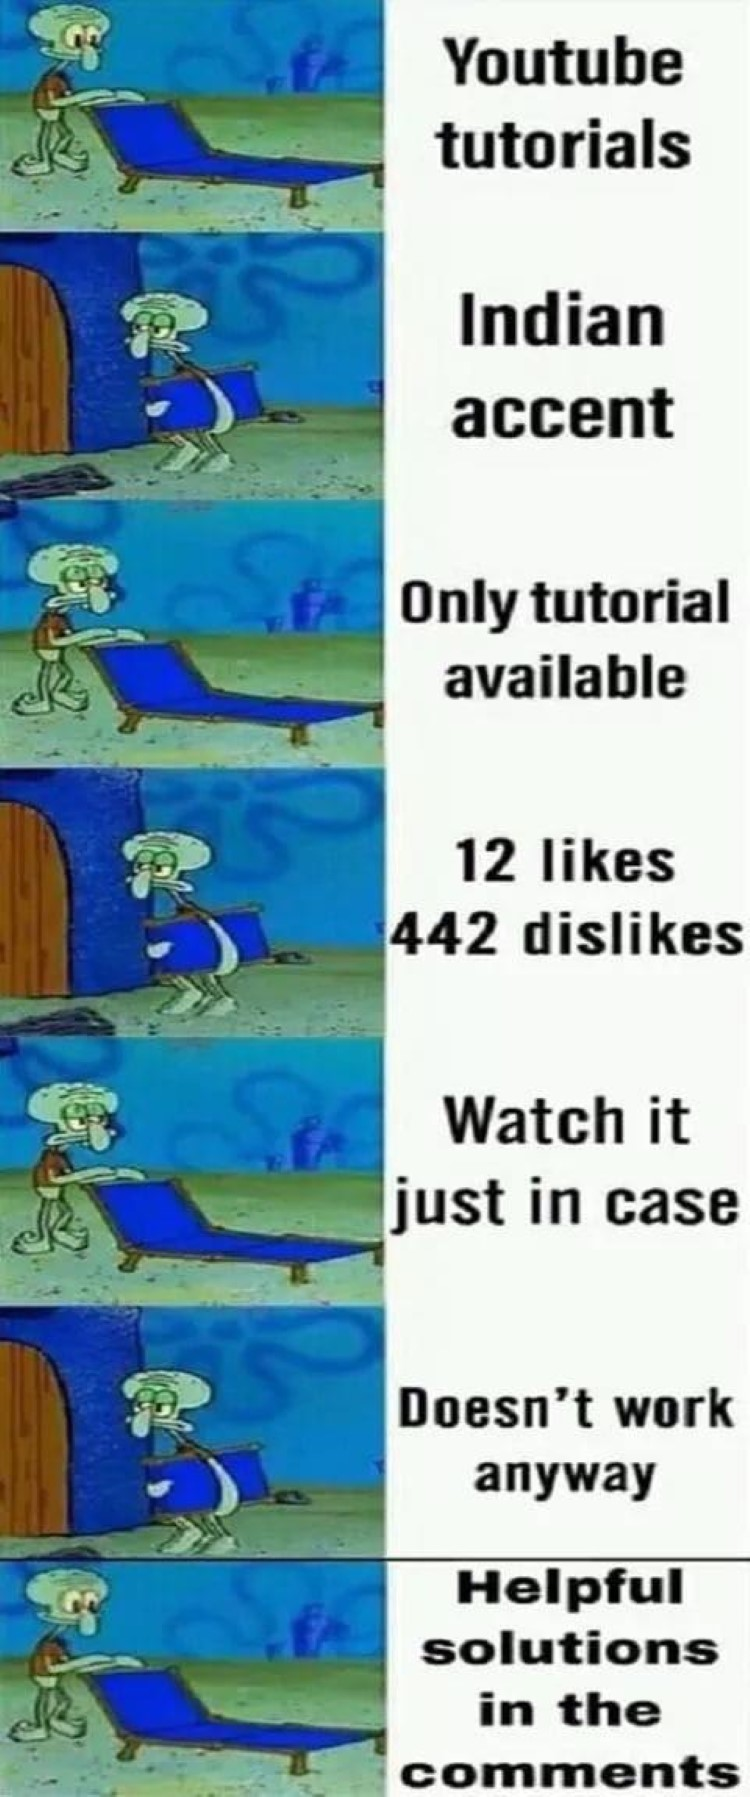 YouTube Squidward meme searching for good tutorial